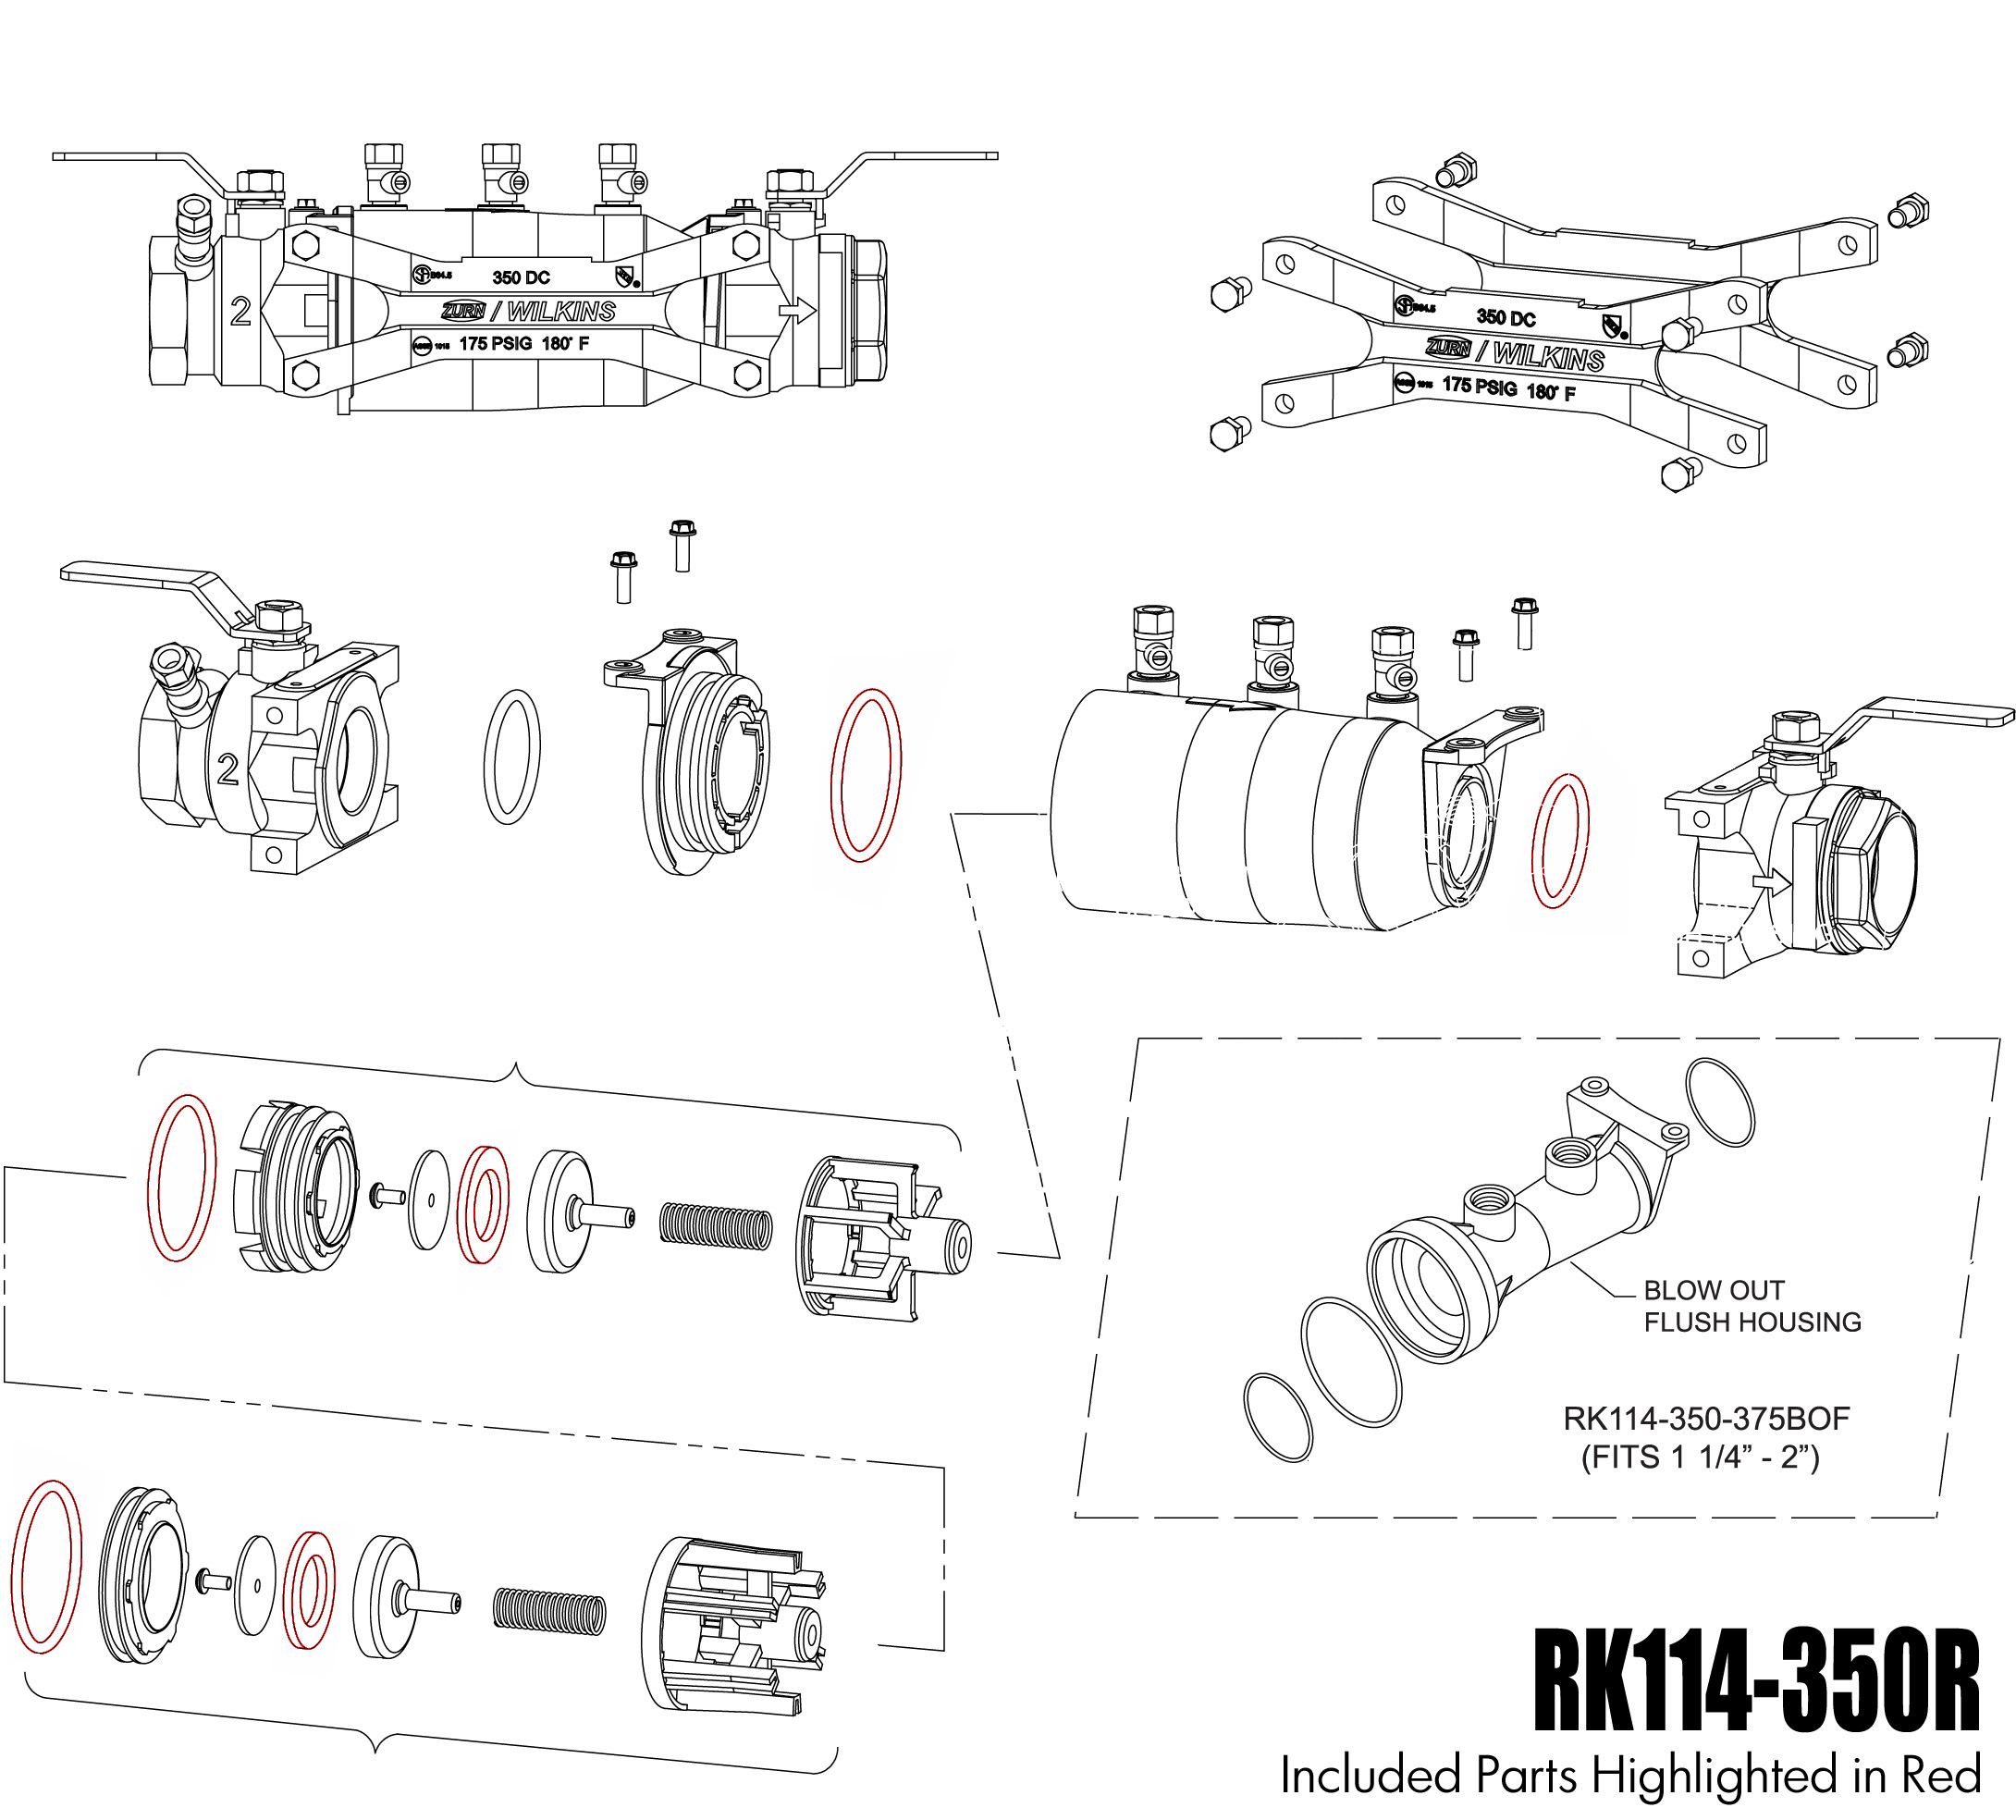 RK114-350R - Rubber Repair Kit